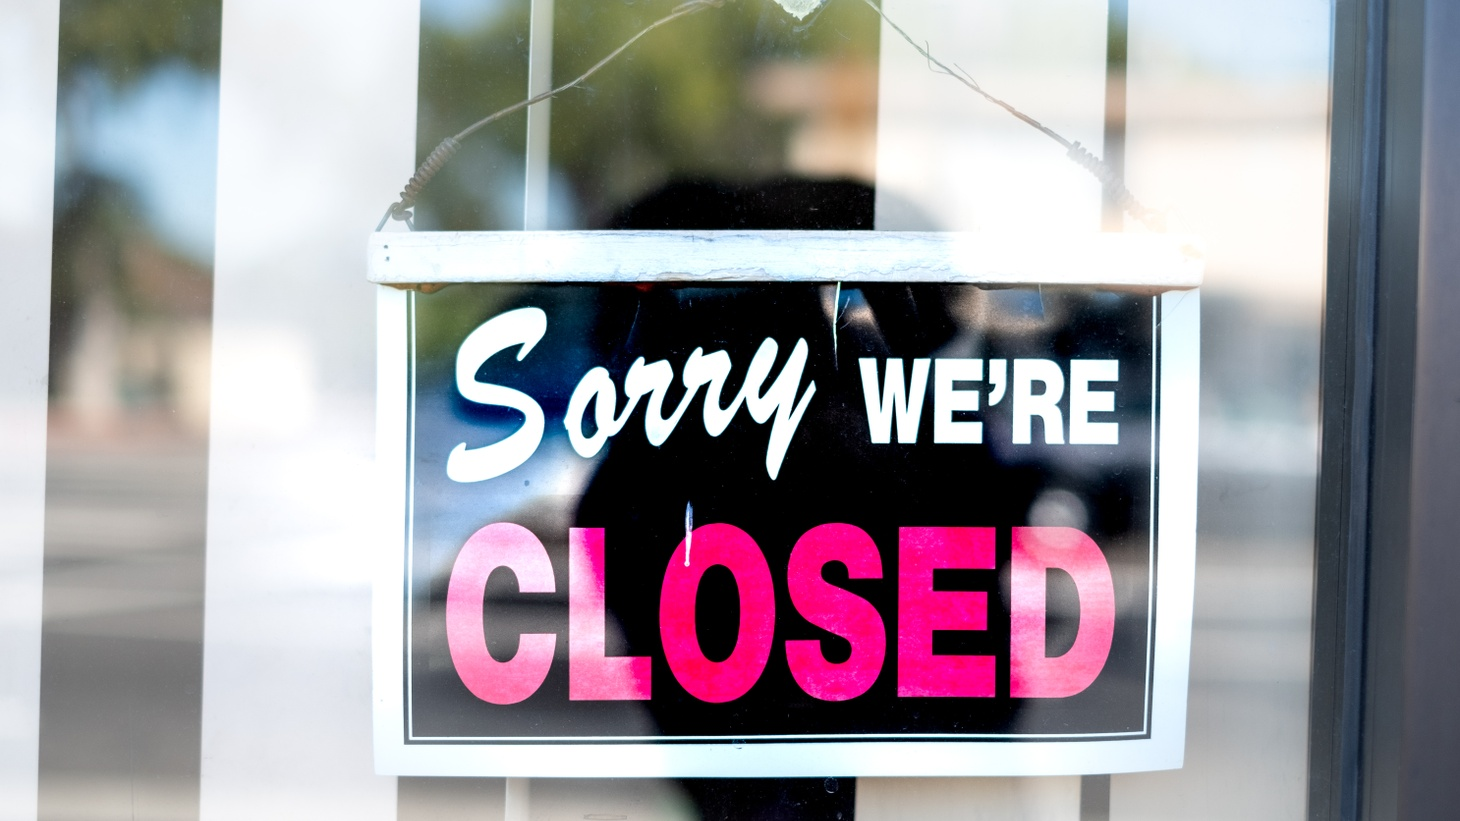 Phoenix Tso reports that certain businesses reported a loss of close to 60% pre-shutdown.